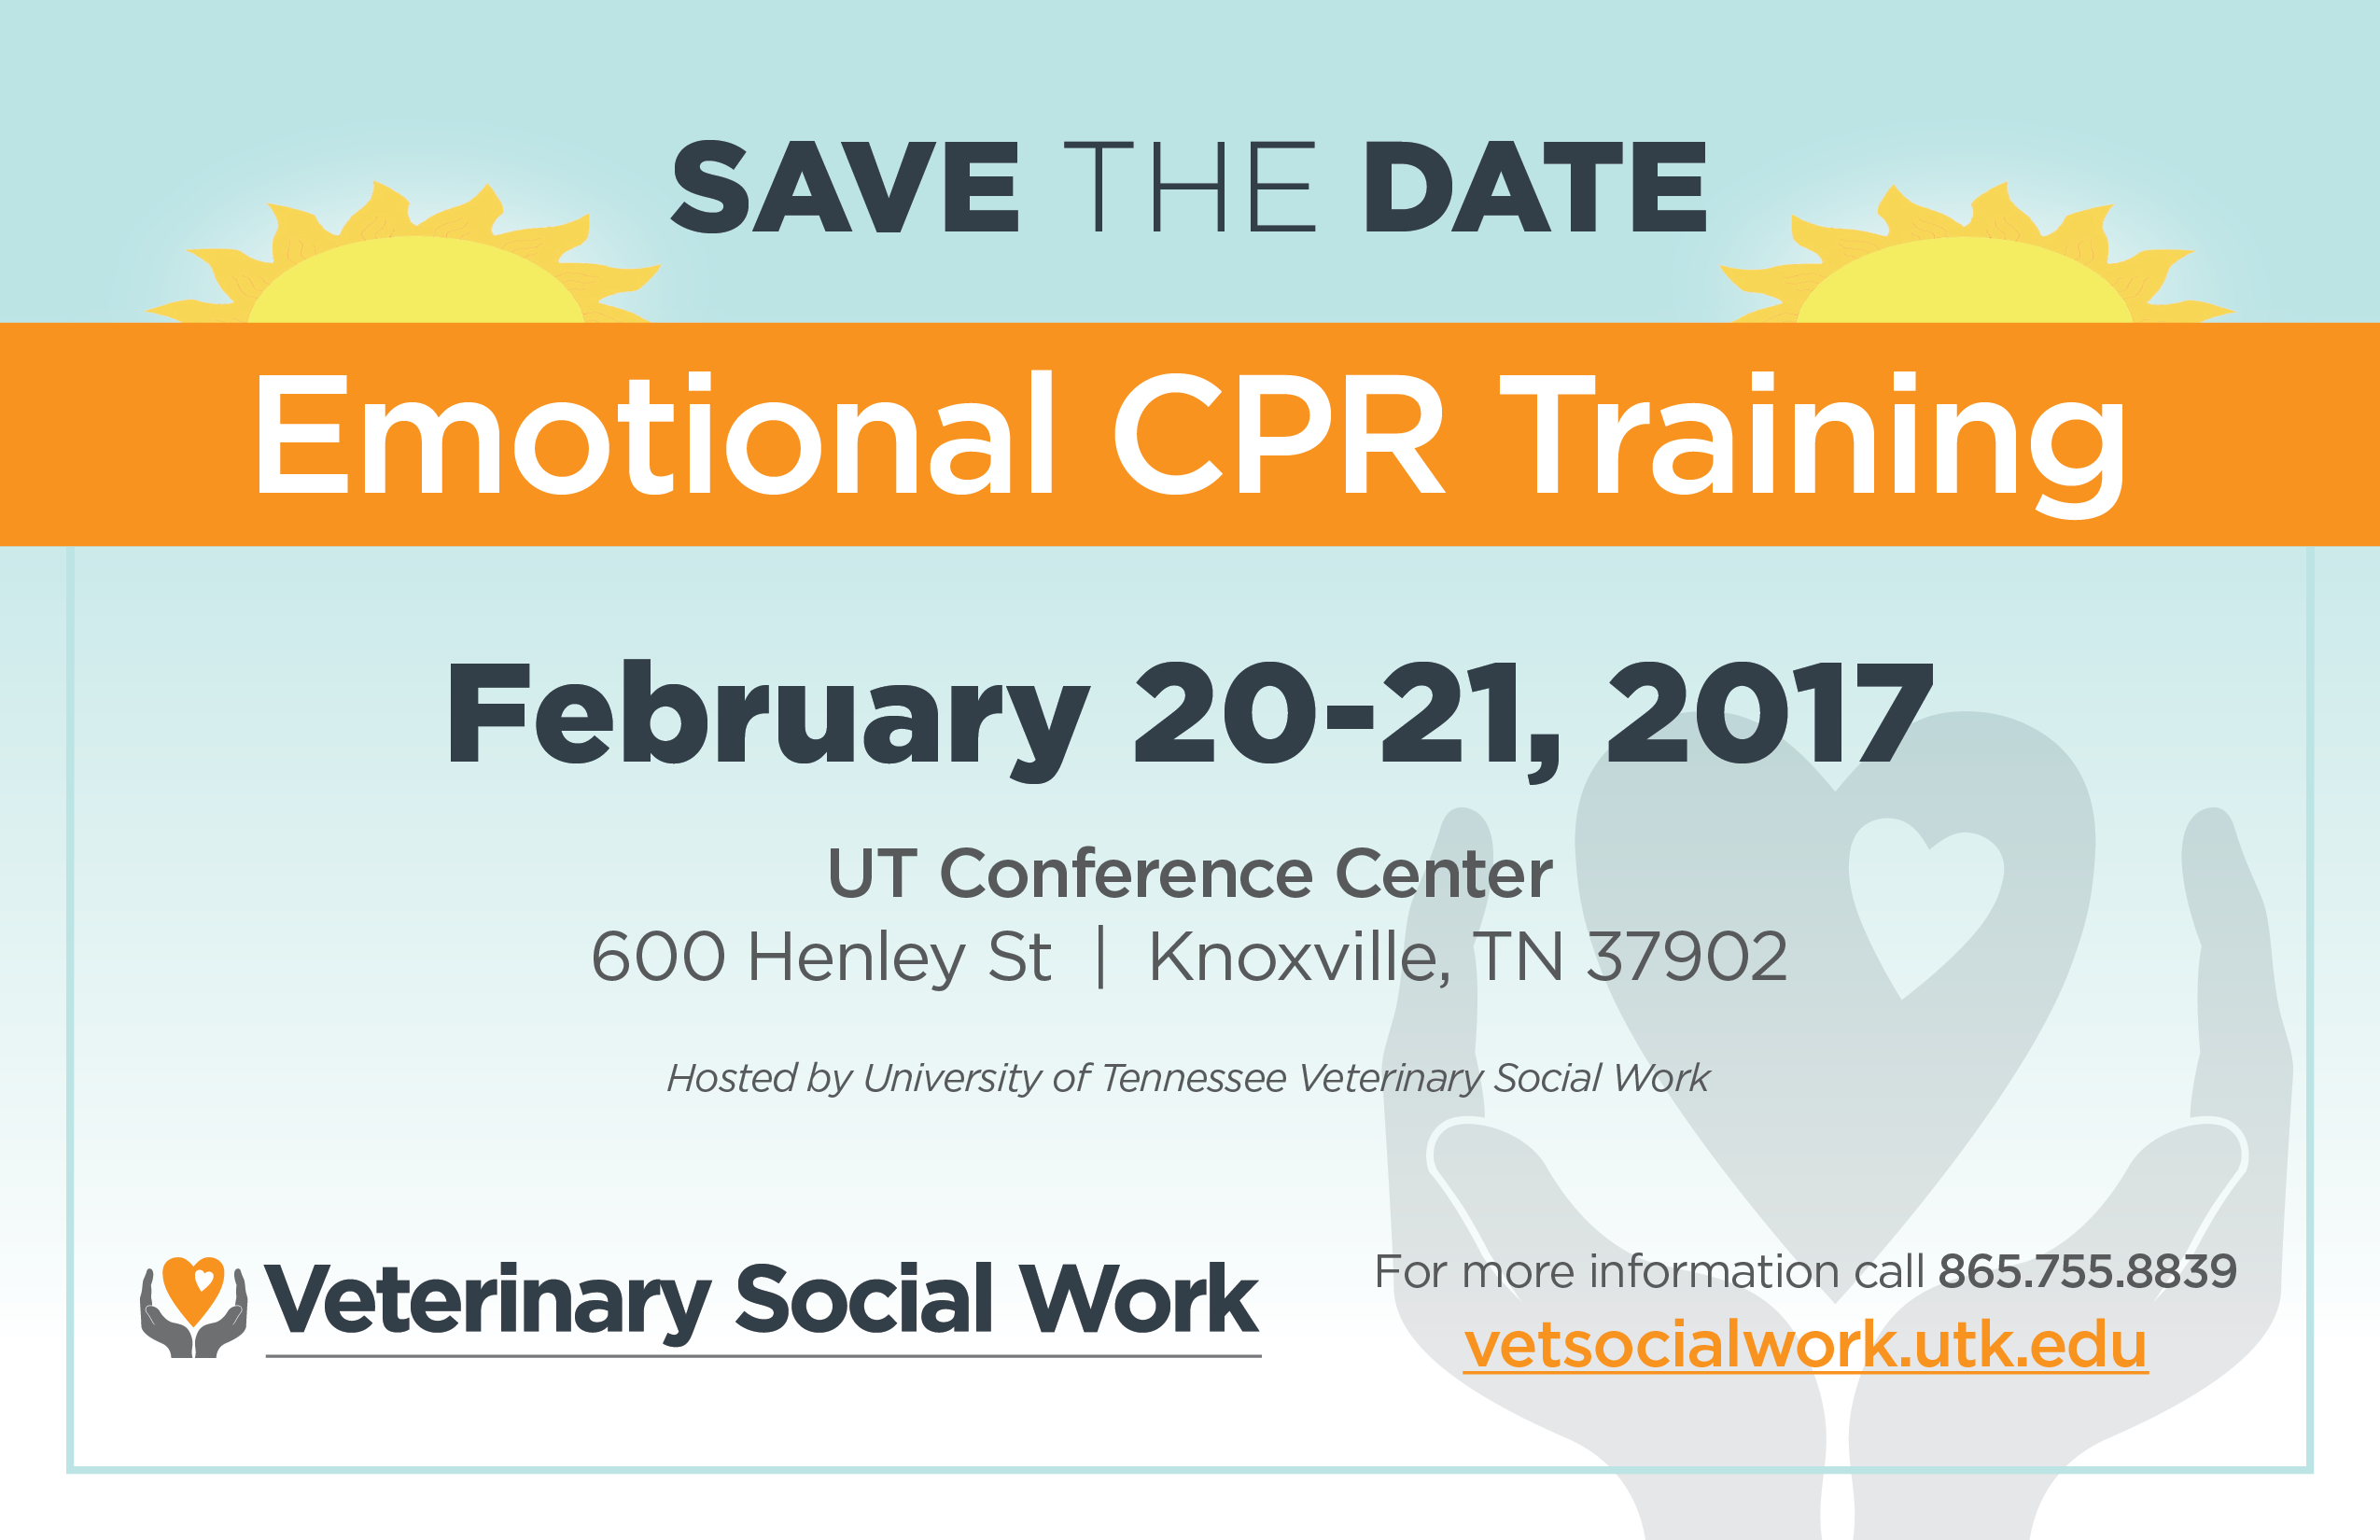 veterinary social work emotional cpr training come join us